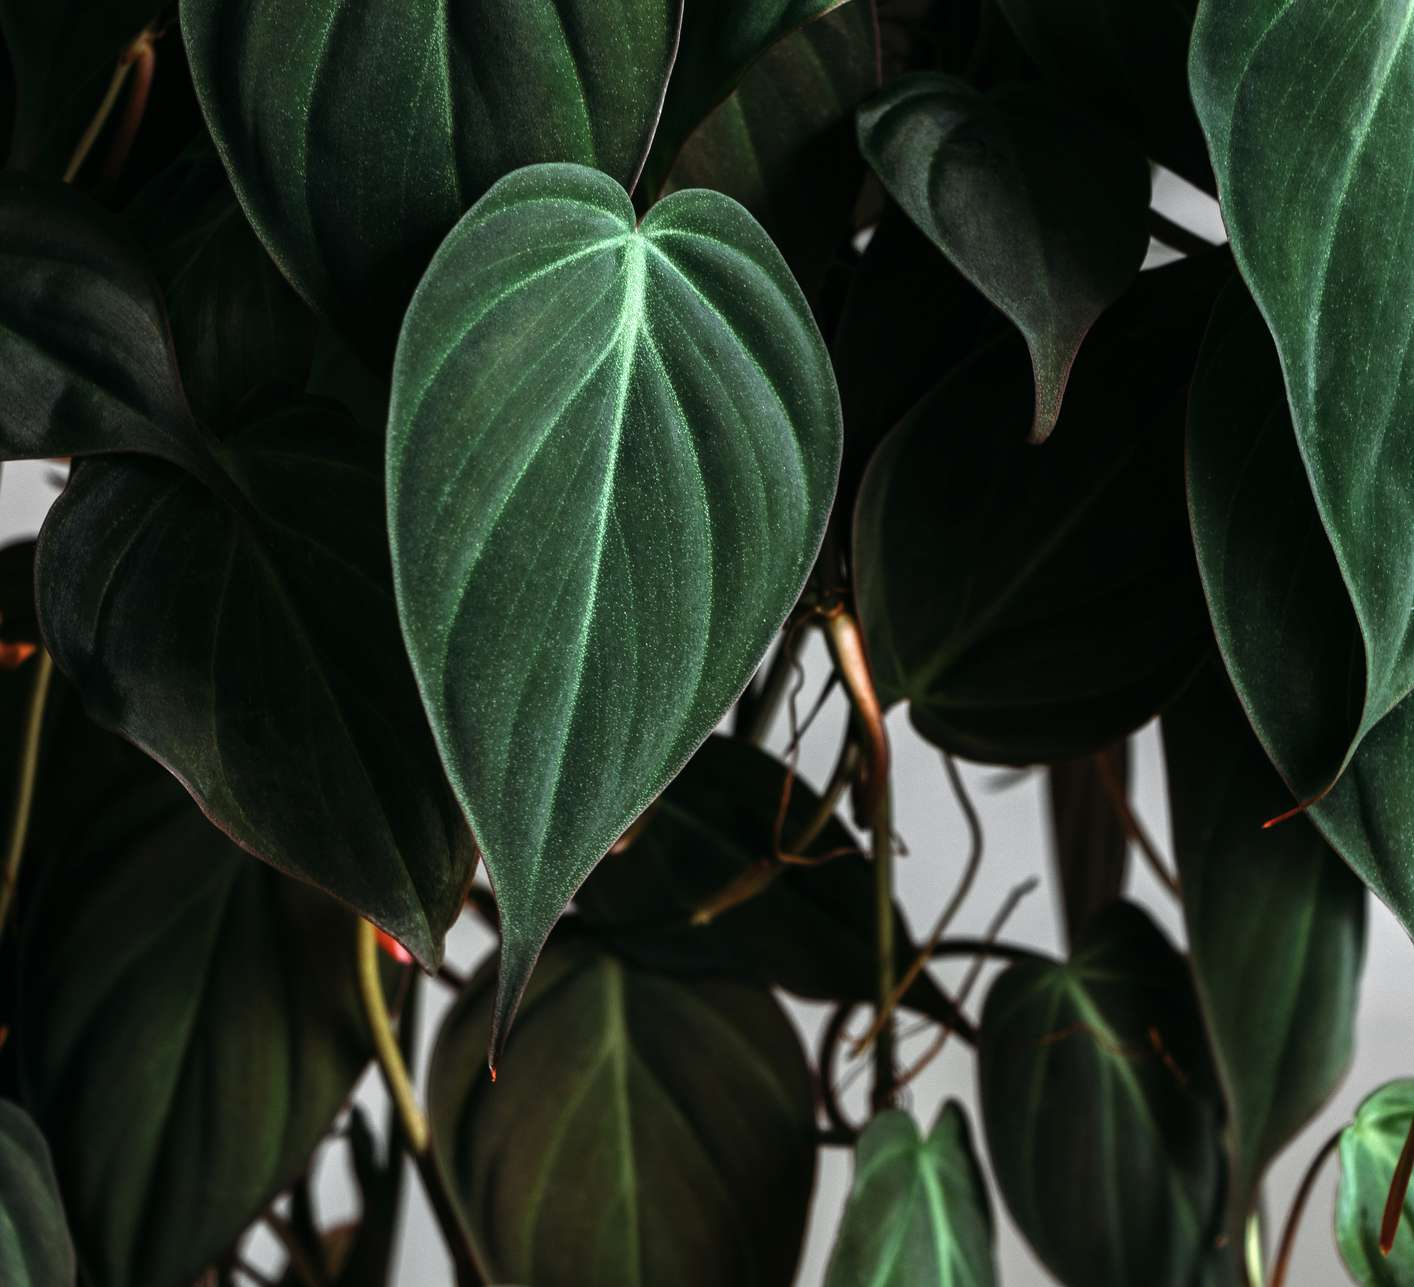 Close up image of a green velvet philodendron micans leaf.